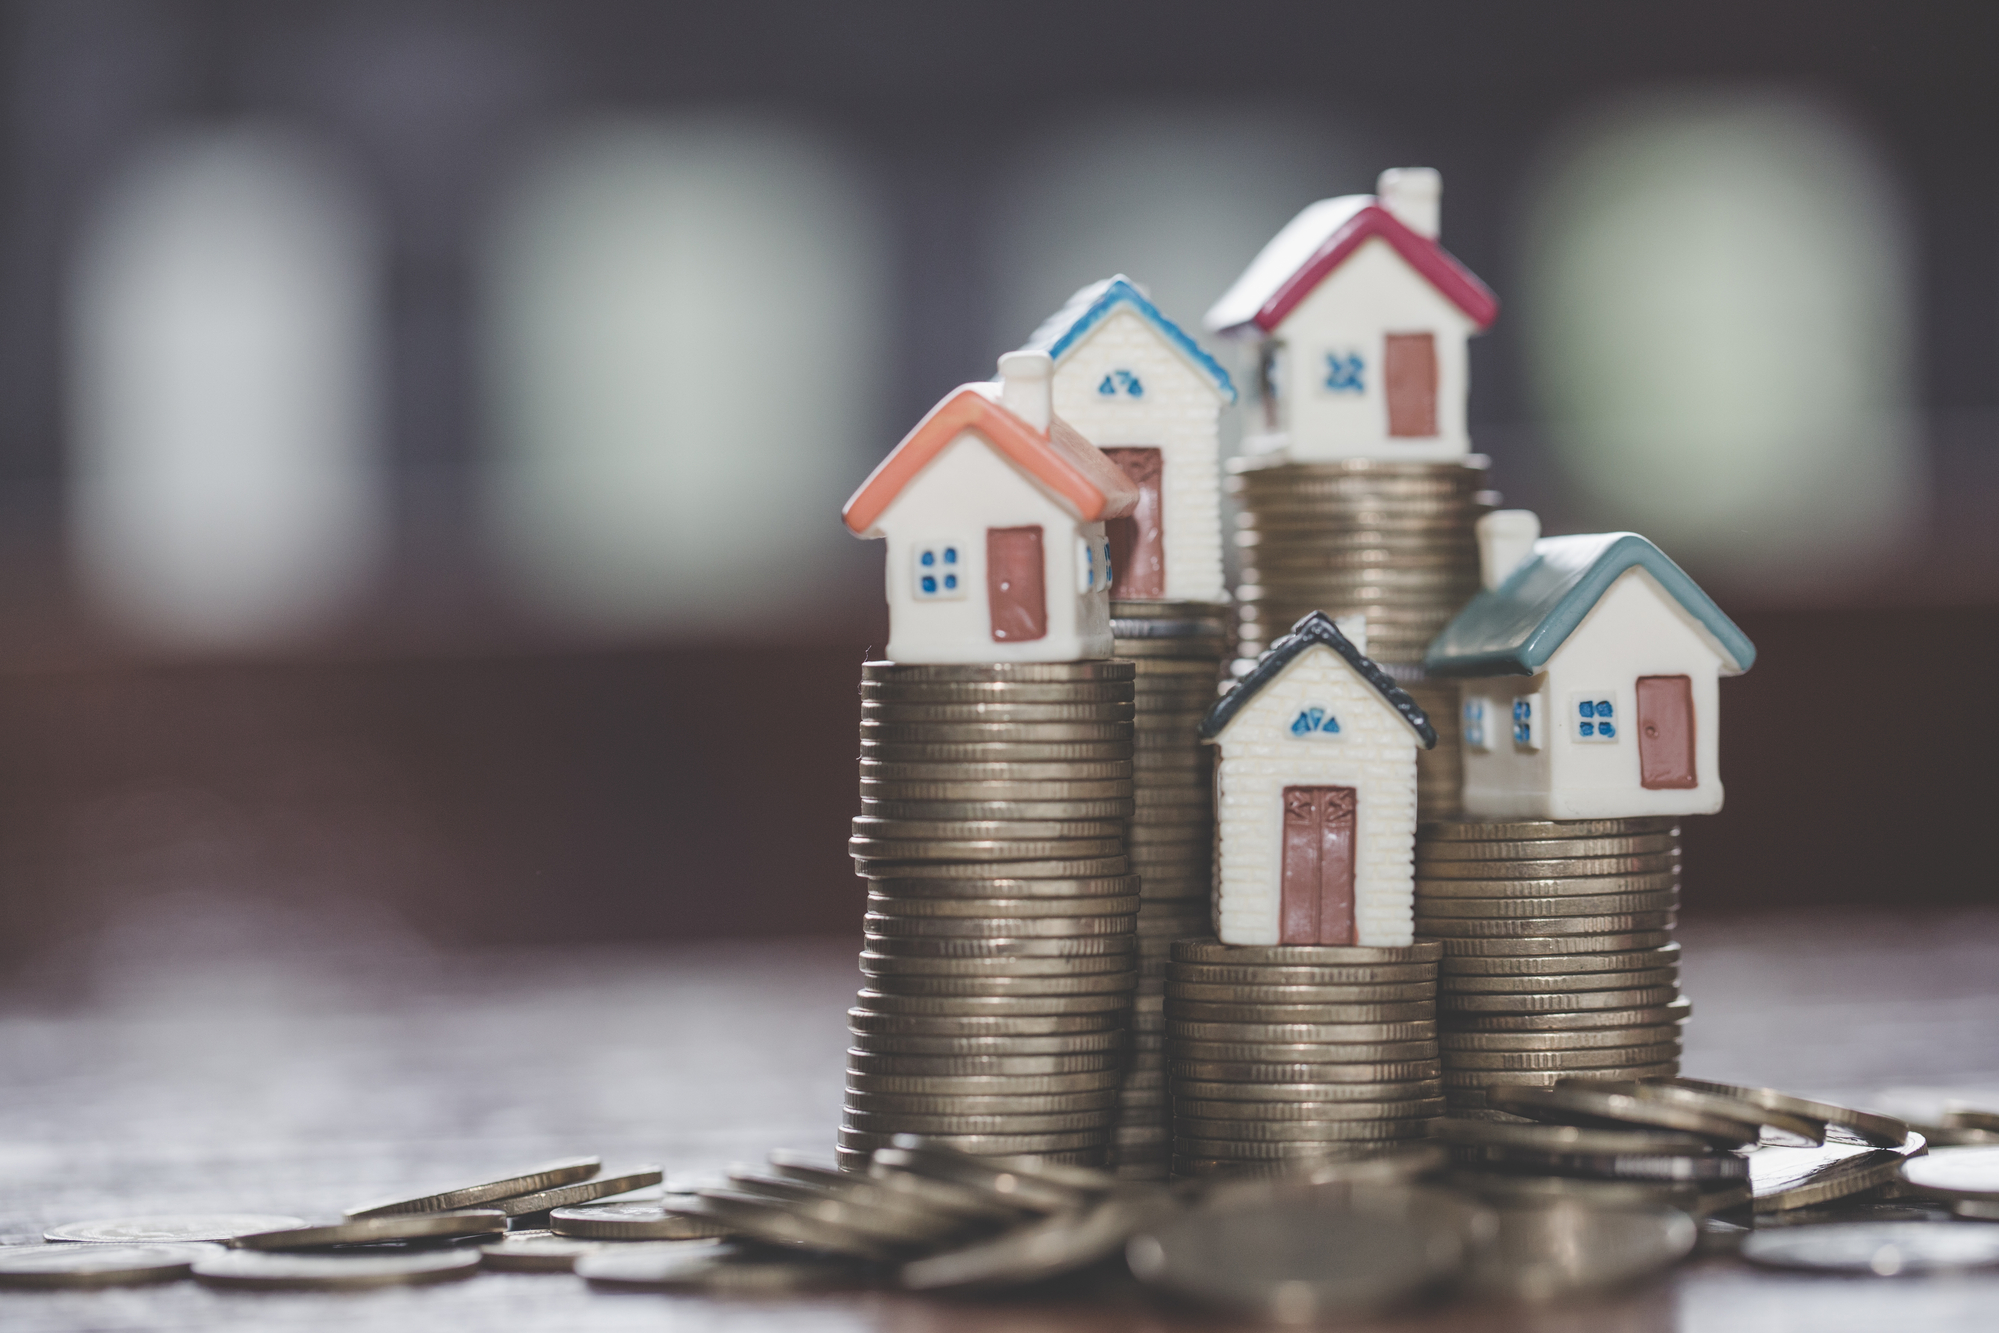 Mini house on stack of coins Mortgage Savings money for buy house and loan to business investment for real estate Invesment and Risk Management